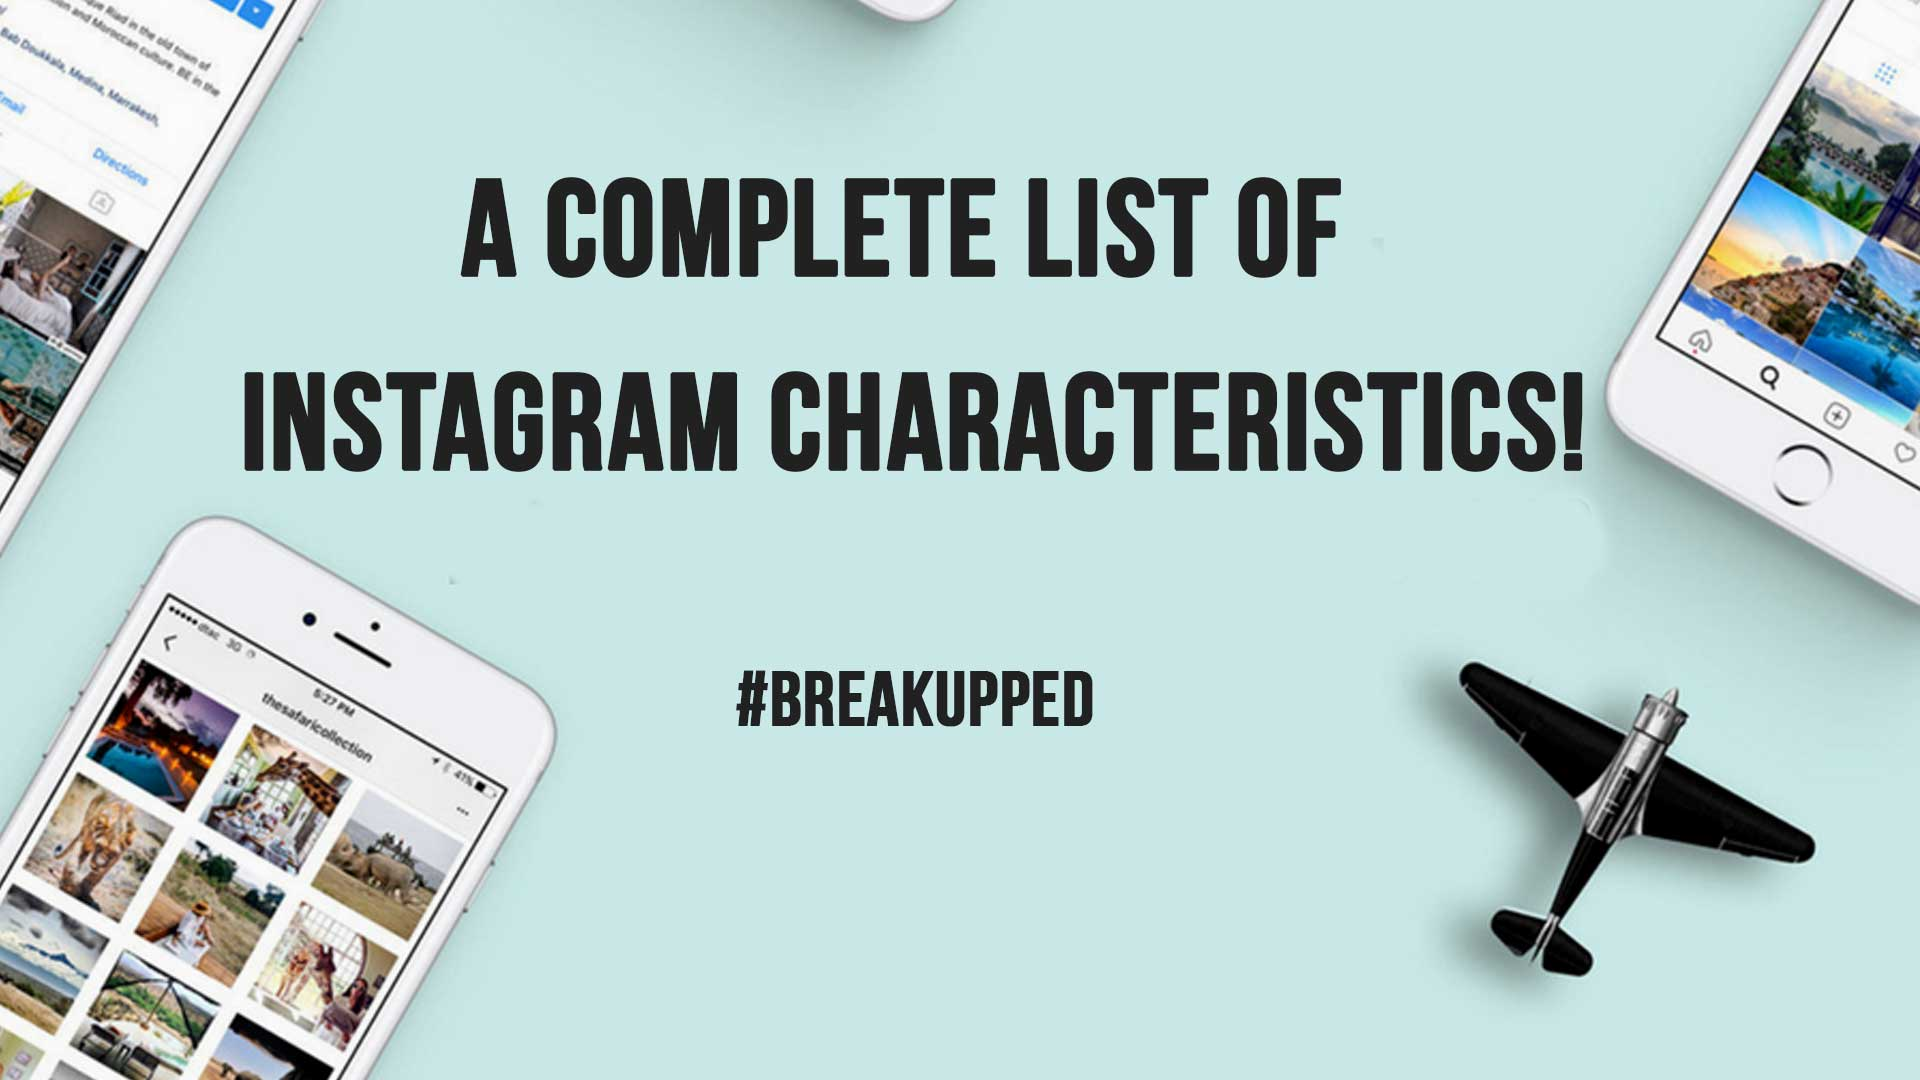 A complete list of Instagram characteristics